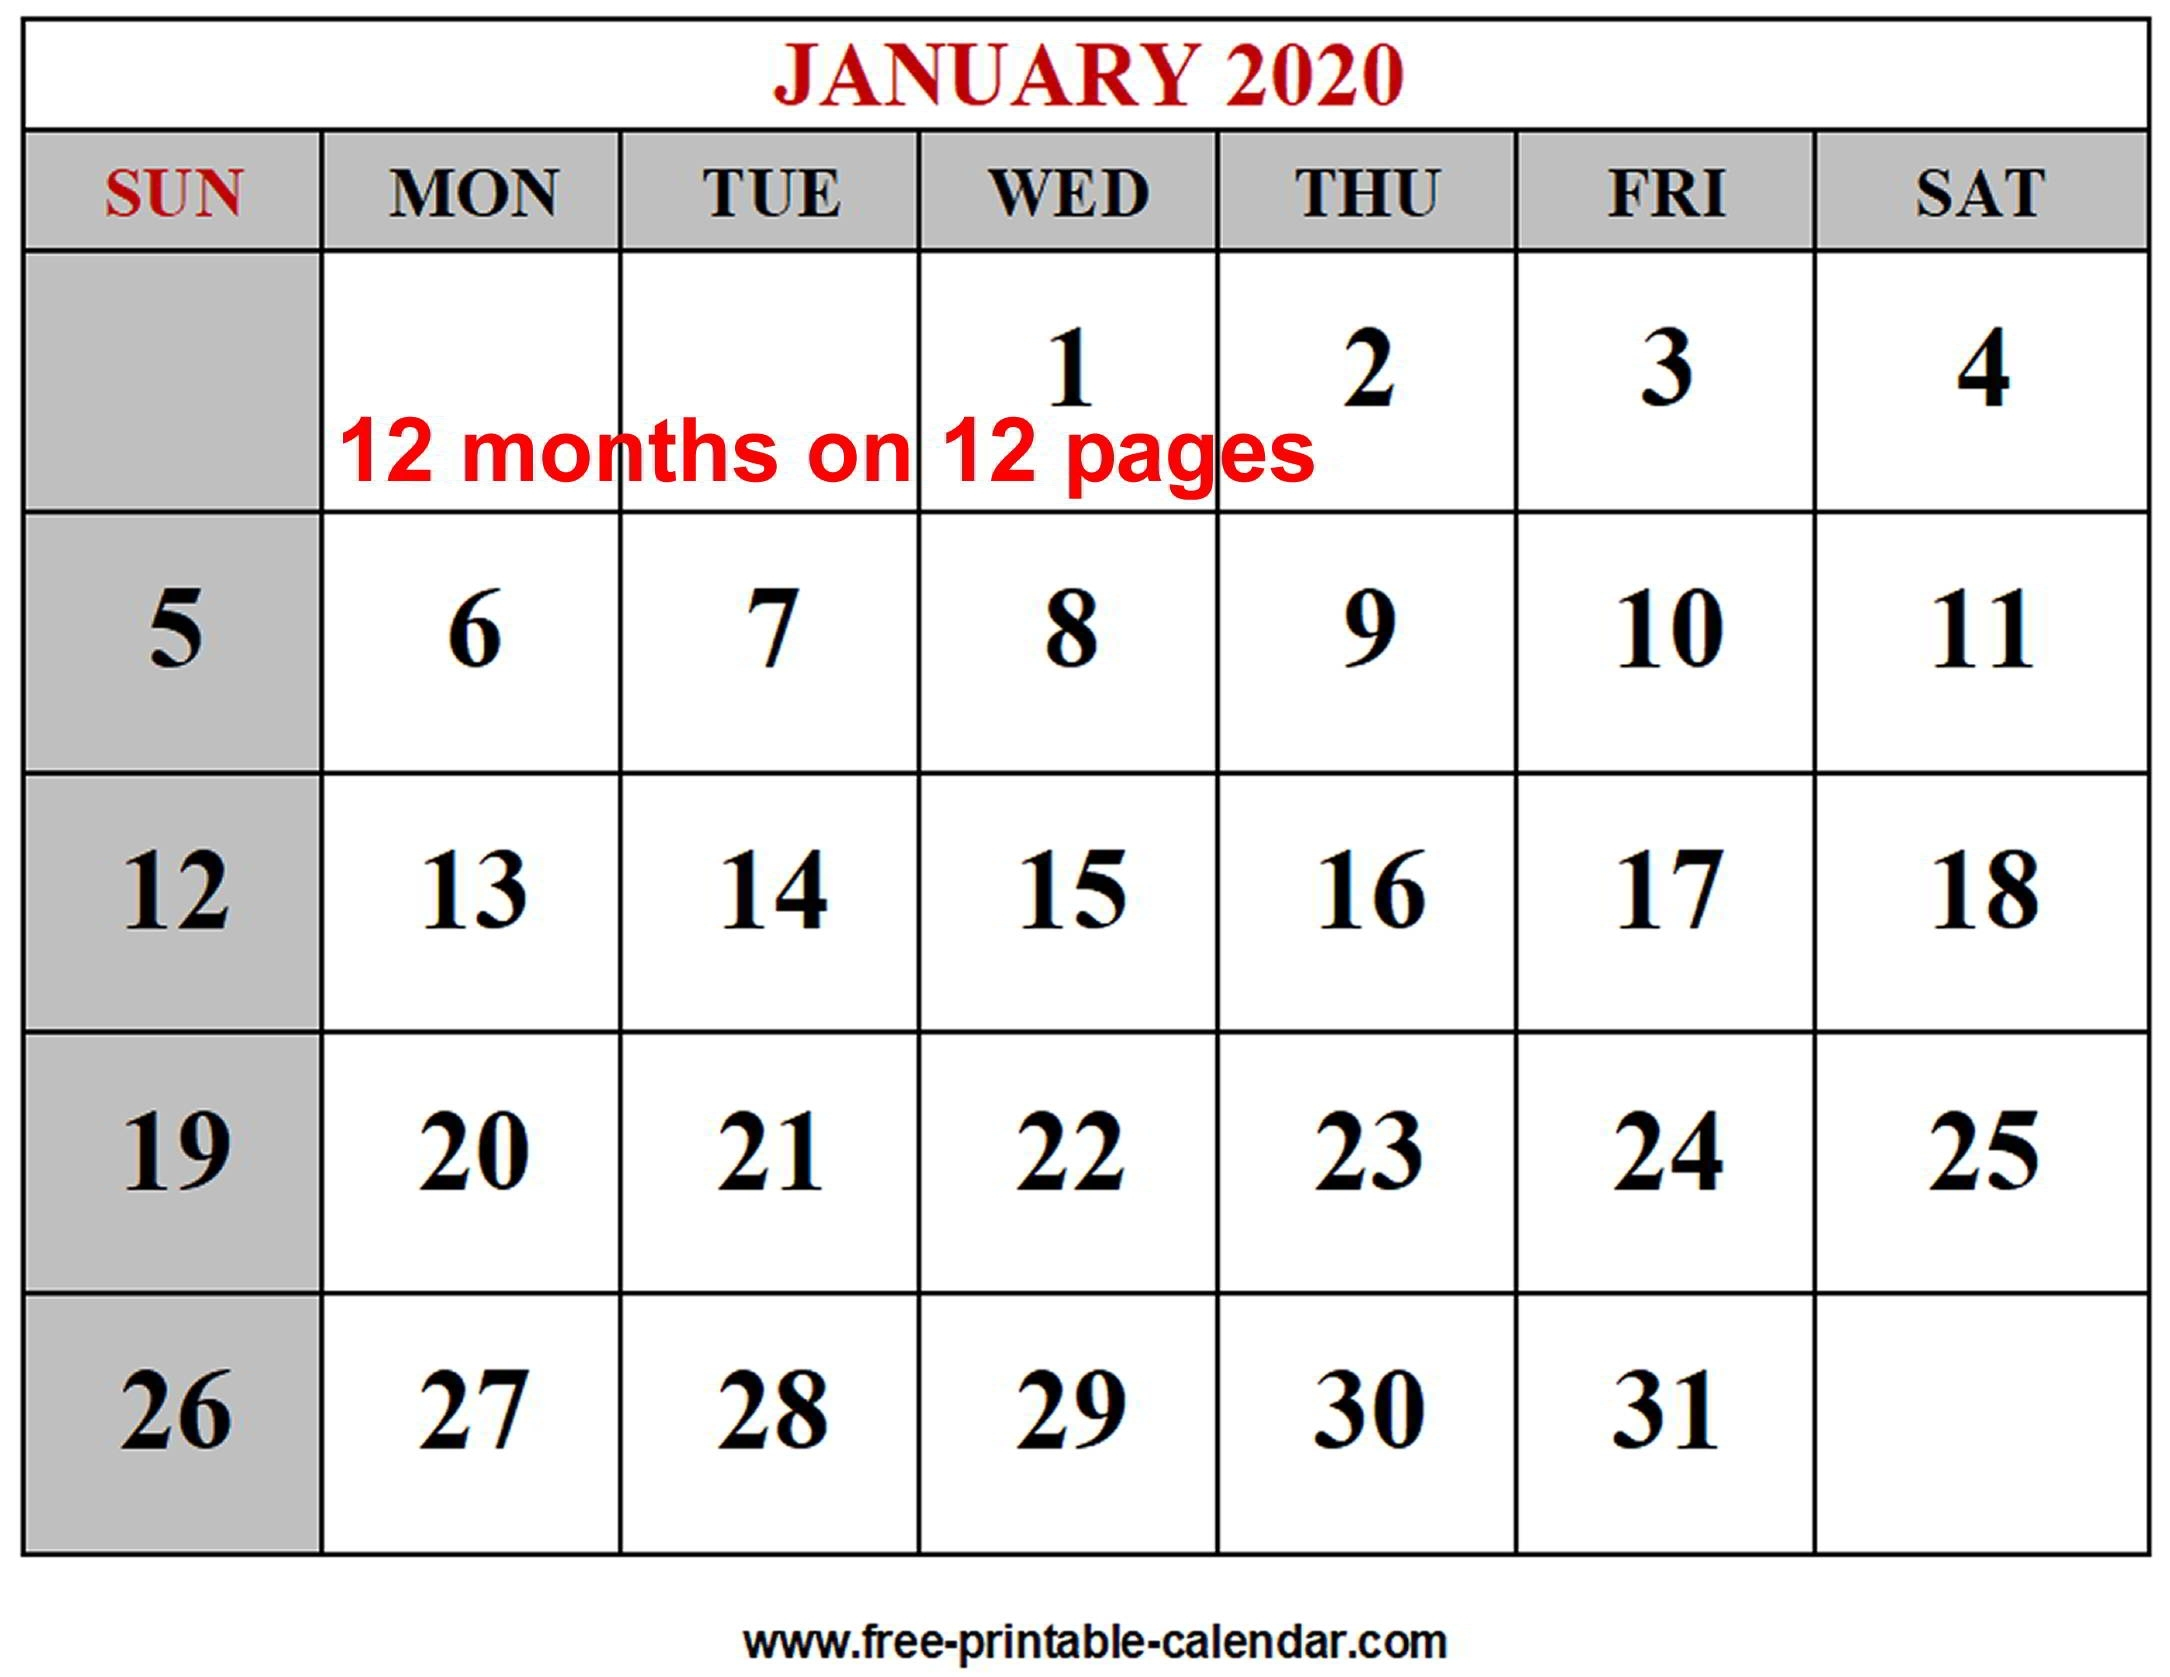 Year 2020 Calendar Templates - Free-Printable-Calendar intended for Free Printable Monthly 2020 Calendar